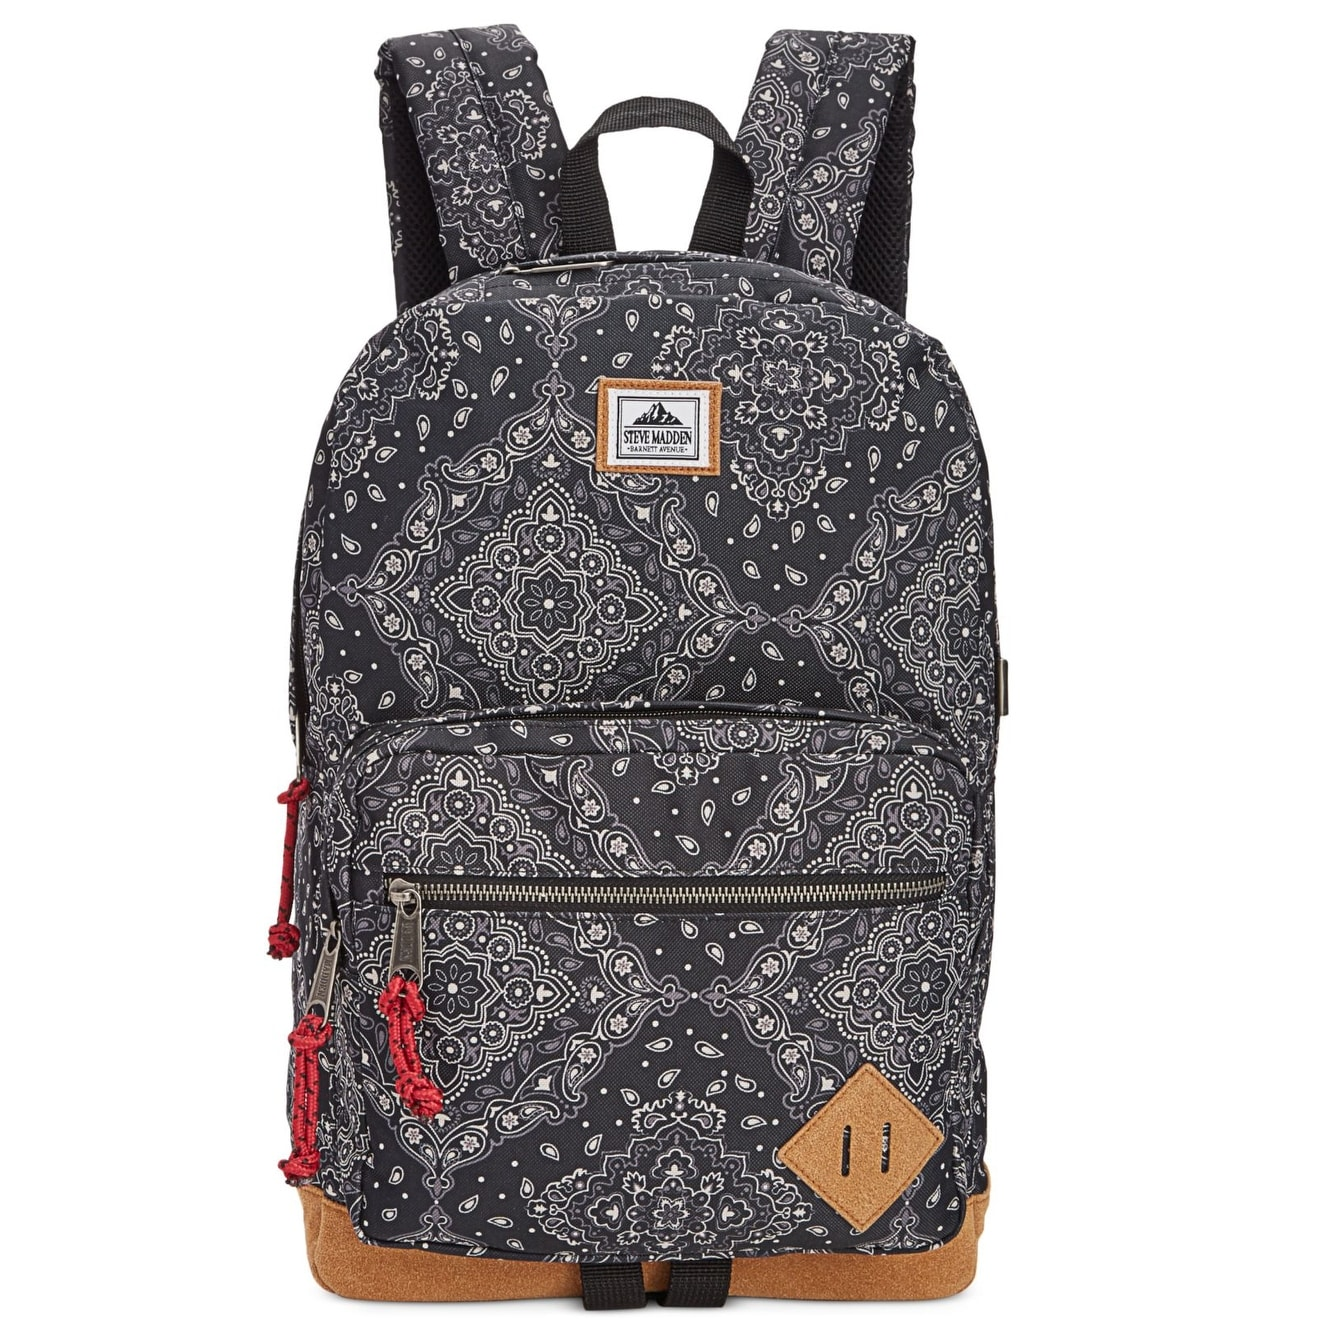 63725278e159 Shop Steve Madden NEW Black Men s Bandana Classic Print Suede Backpack -  Free Shipping On Orders Over  45 - Overstock - 20559582